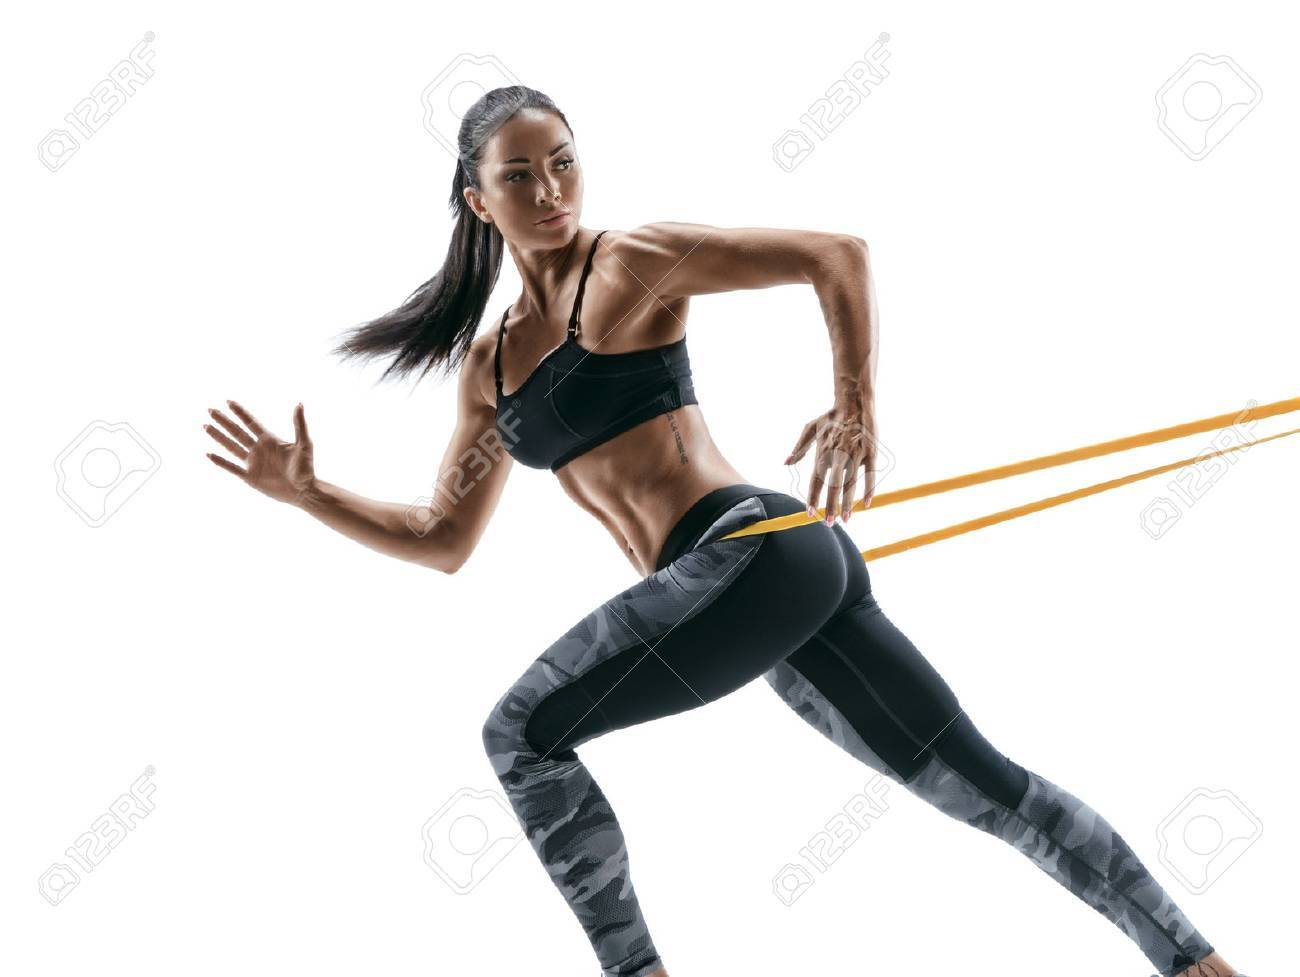 Strong woman using a resistance band in her exercise routine. Young woman performs fitness exercises on white background. - 76708191